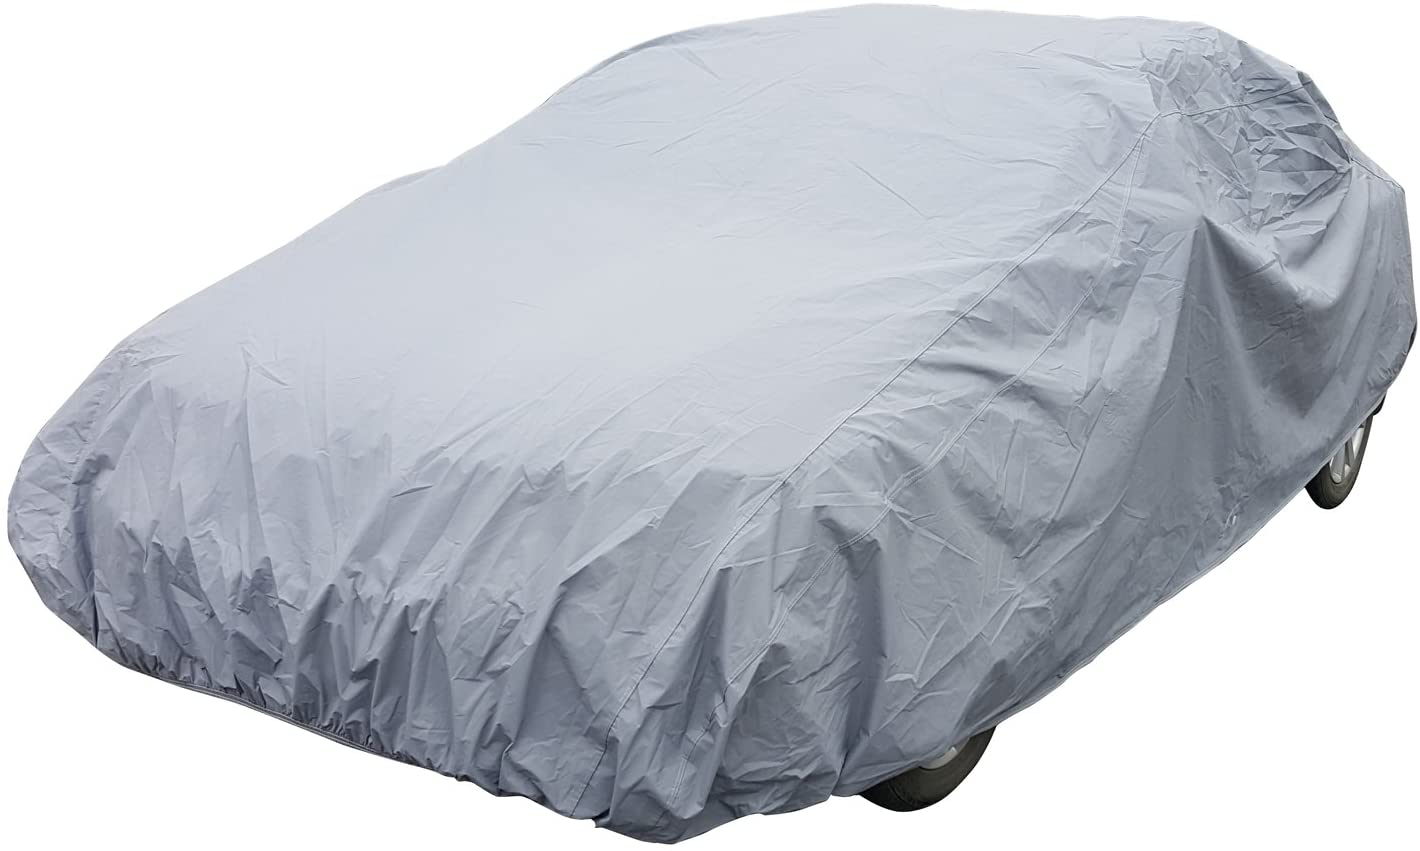 Universal Car Cover Protects Against Weather Damage, Fits Sedan Type Up to 204 Inches Length